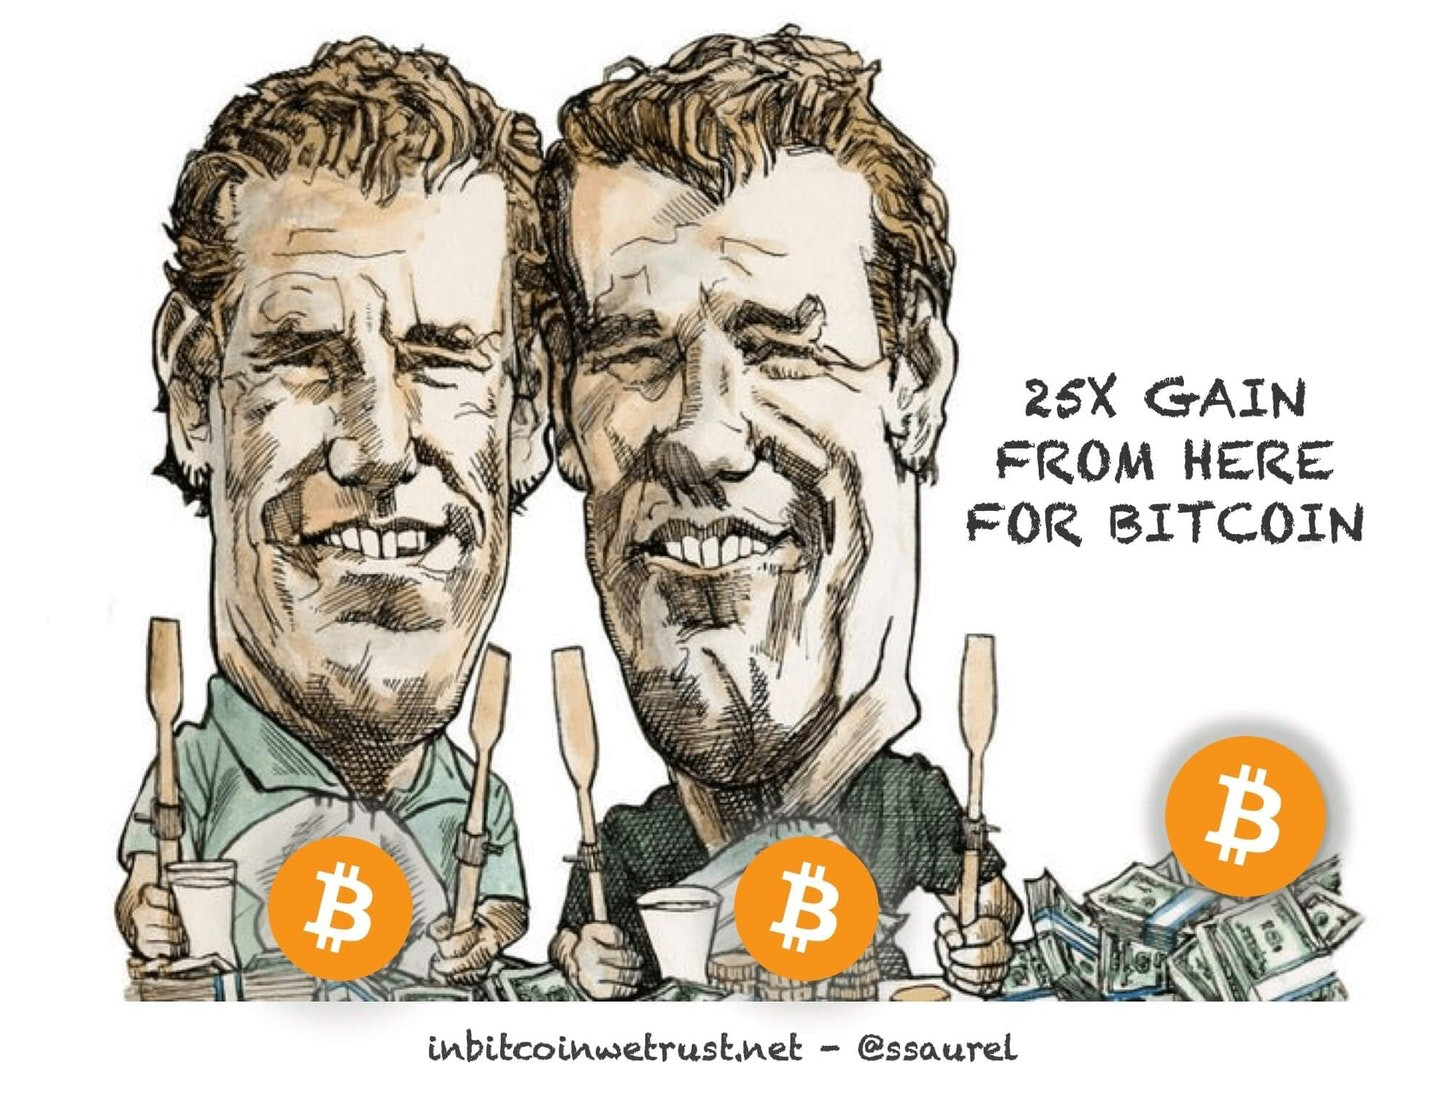 The Winklevoss twins see a 25x gain from here for the Bitcoin price